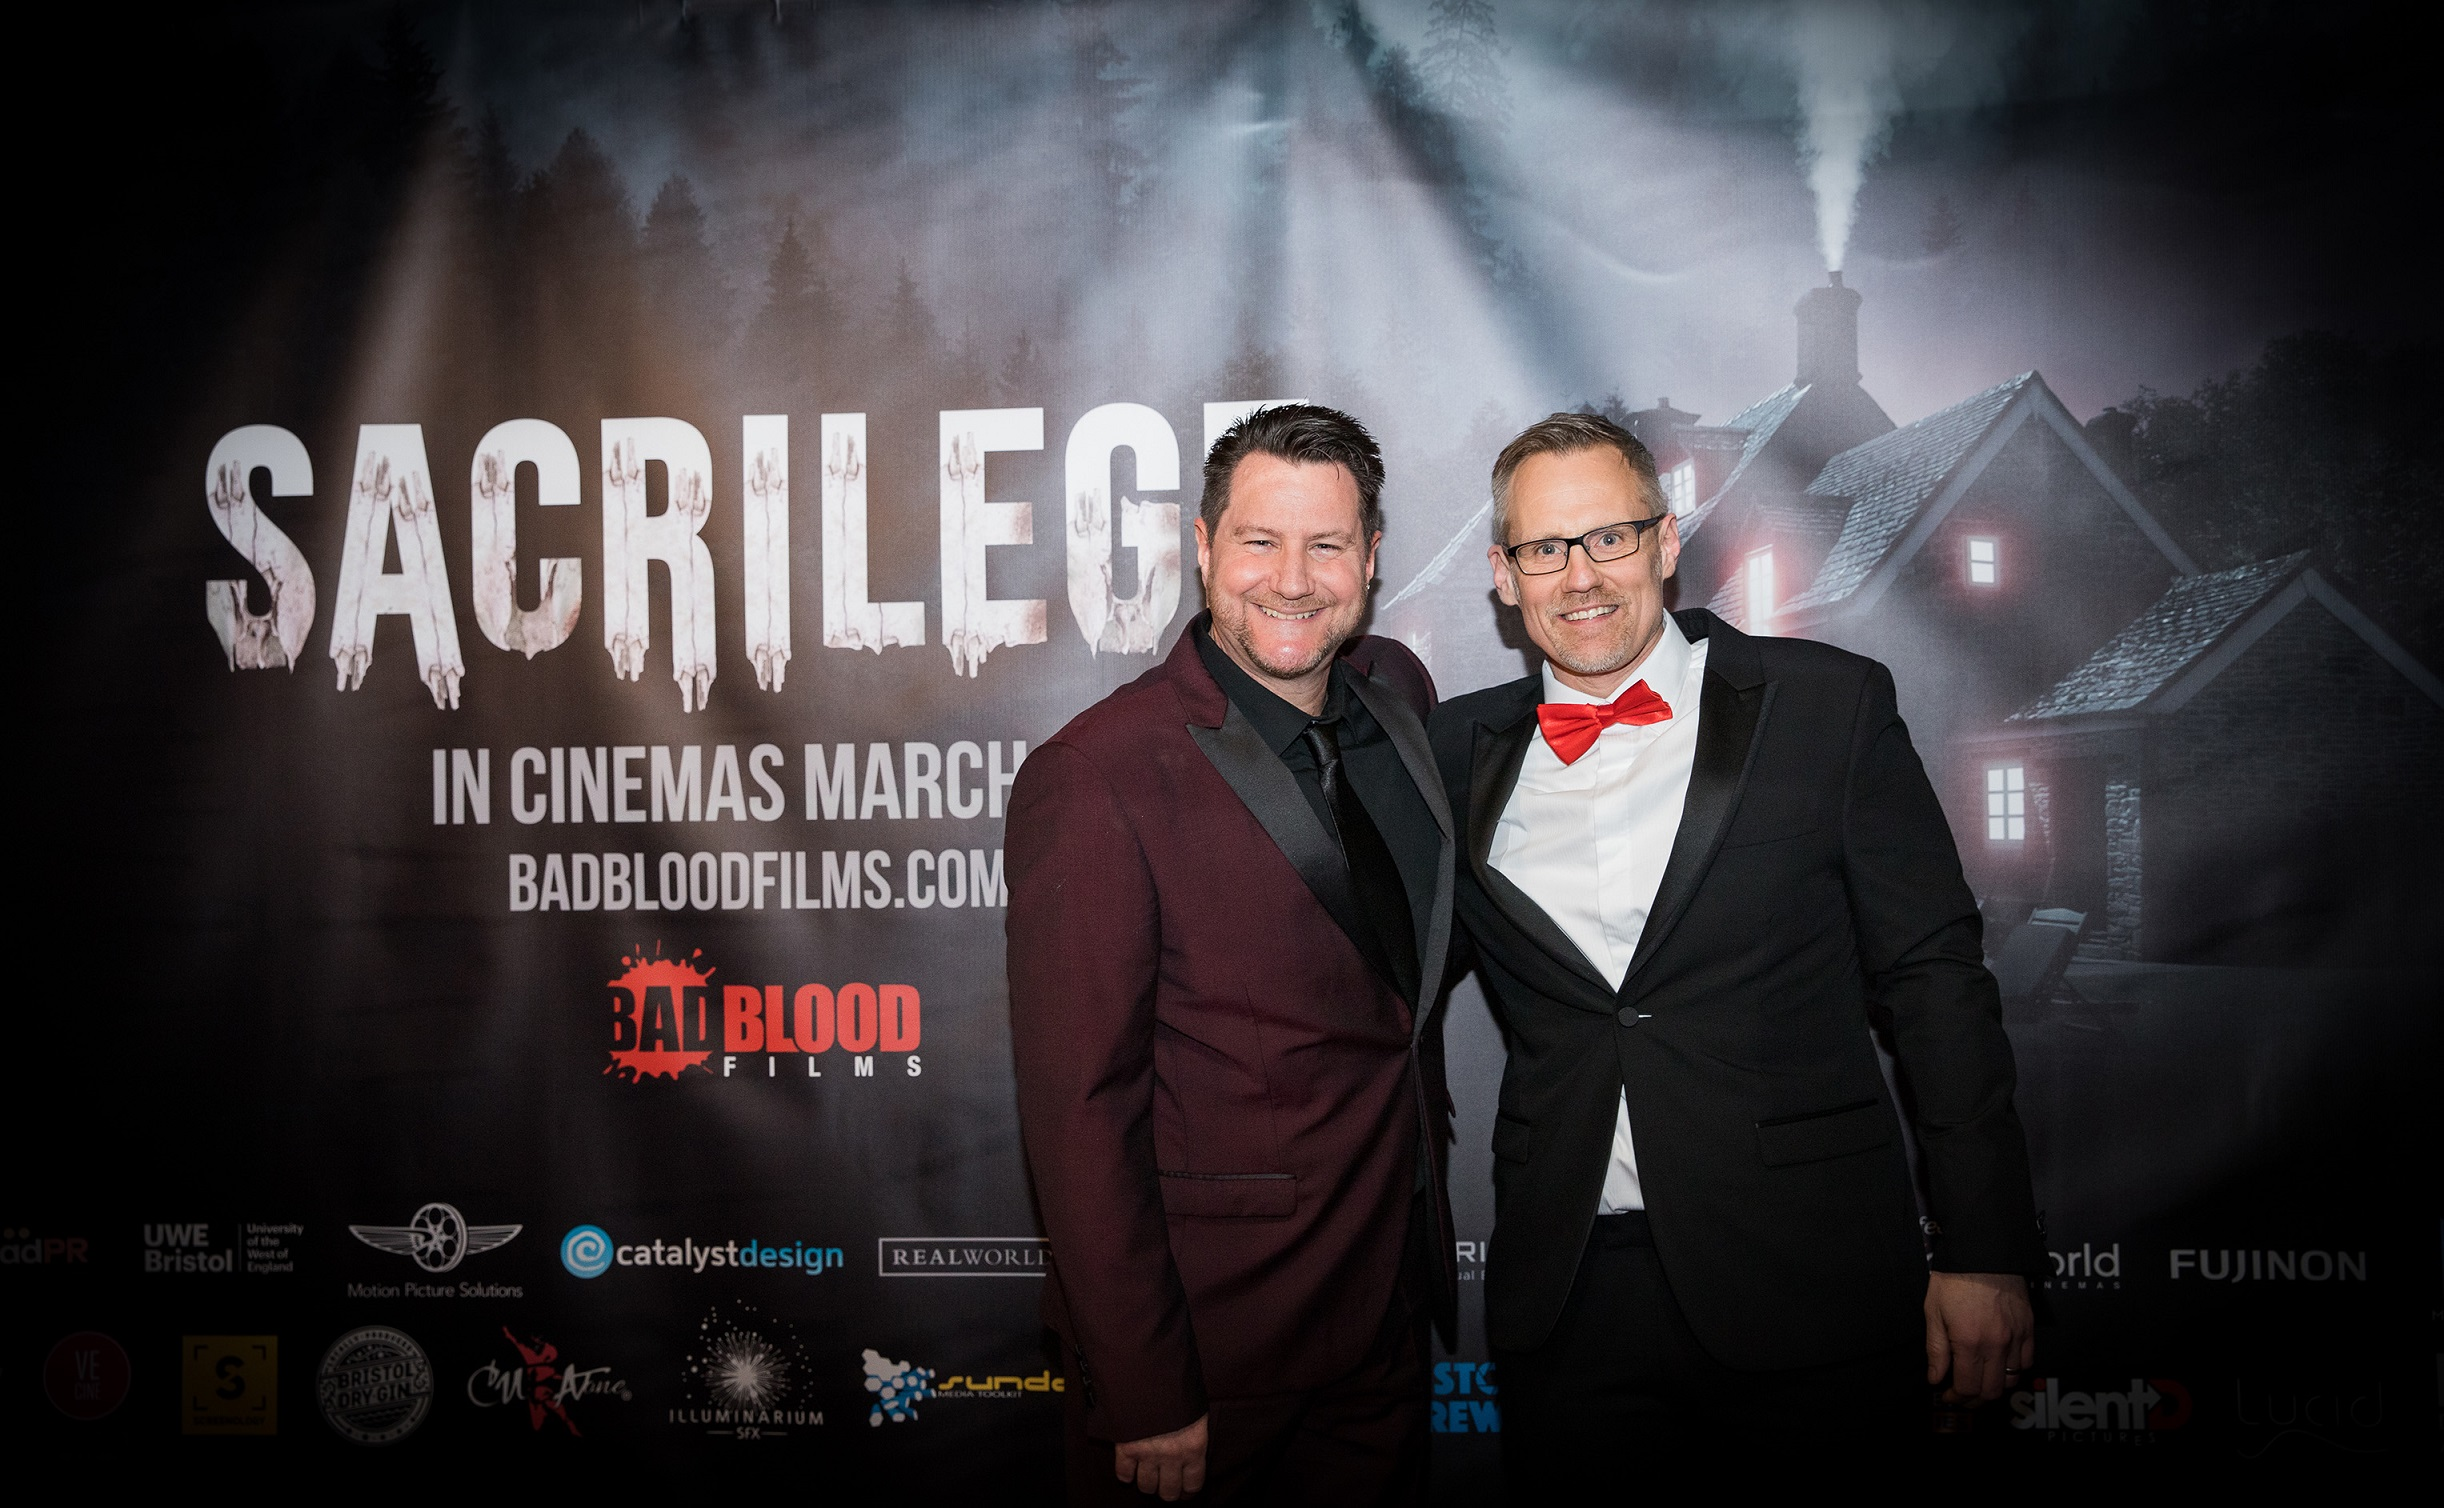 Horror fans worst fears revealed at UK premiere of supernatural horror, Sacrilege